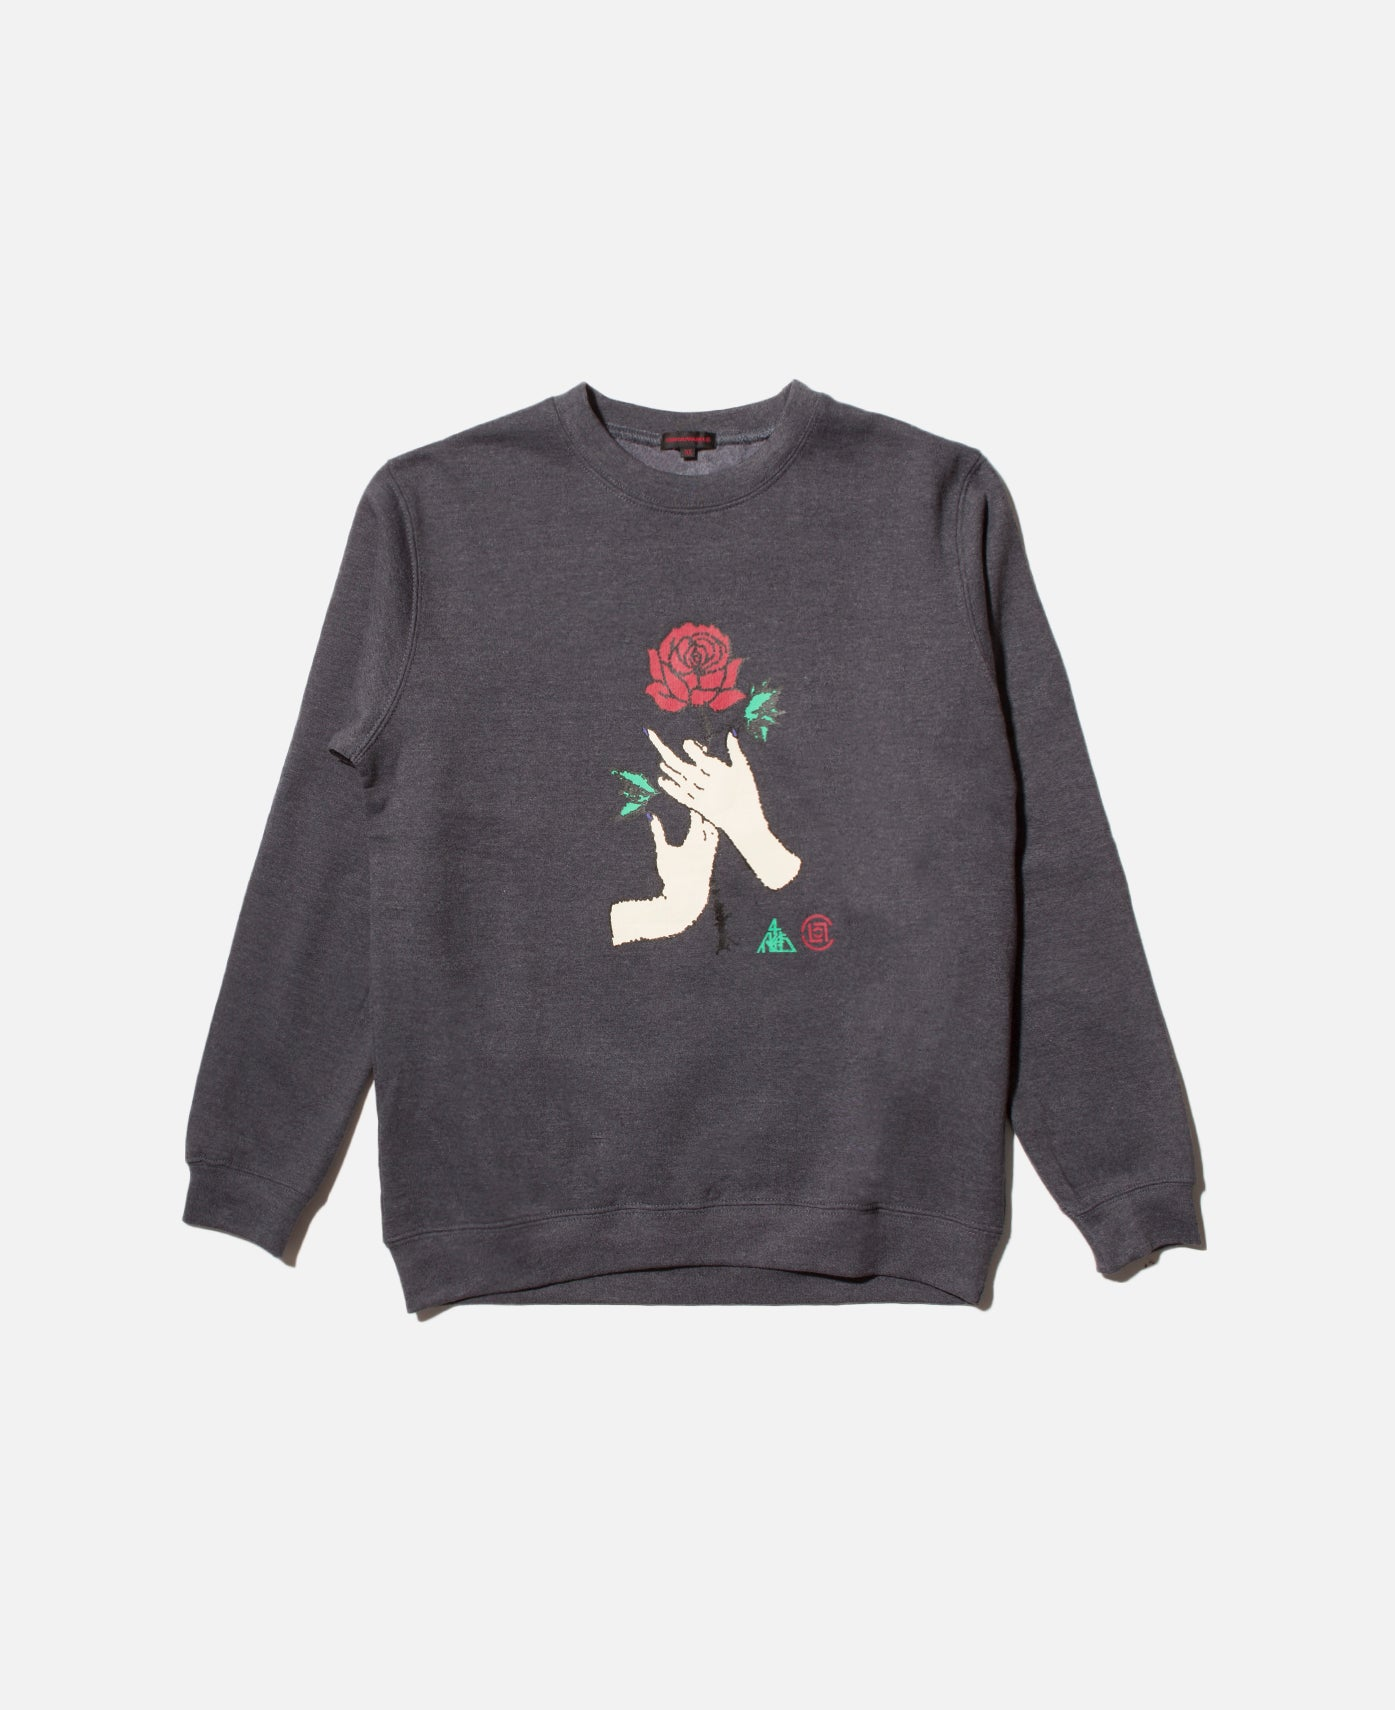 CLOT x 4PK Crewneck Sweat